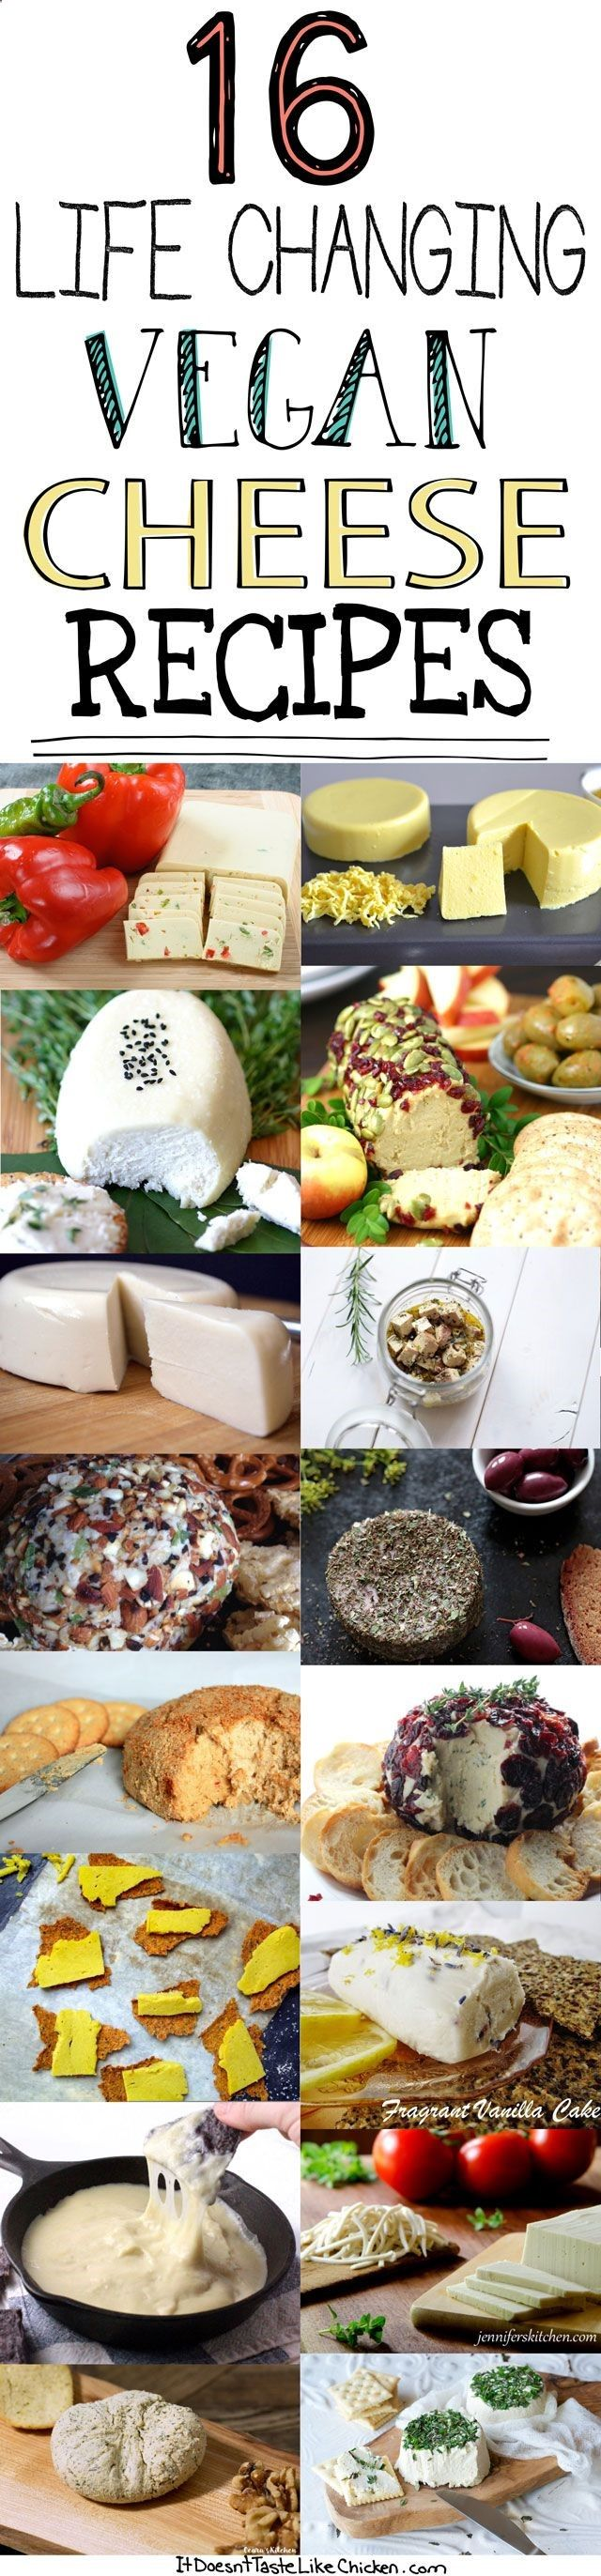 Eat Stop Eat To Loss Weight - 16 Life Changing Vegan Cheese Recipes! Want to go vegan but love cheese? No problem! These dairy free cheese recipes will satisfy all your cheesy needs. #itdoesnttastelikechicken - In Just One Day This Simple Strategy Frees You From Complicated Diet Rules - And Eliminates Rebound Weight Gain